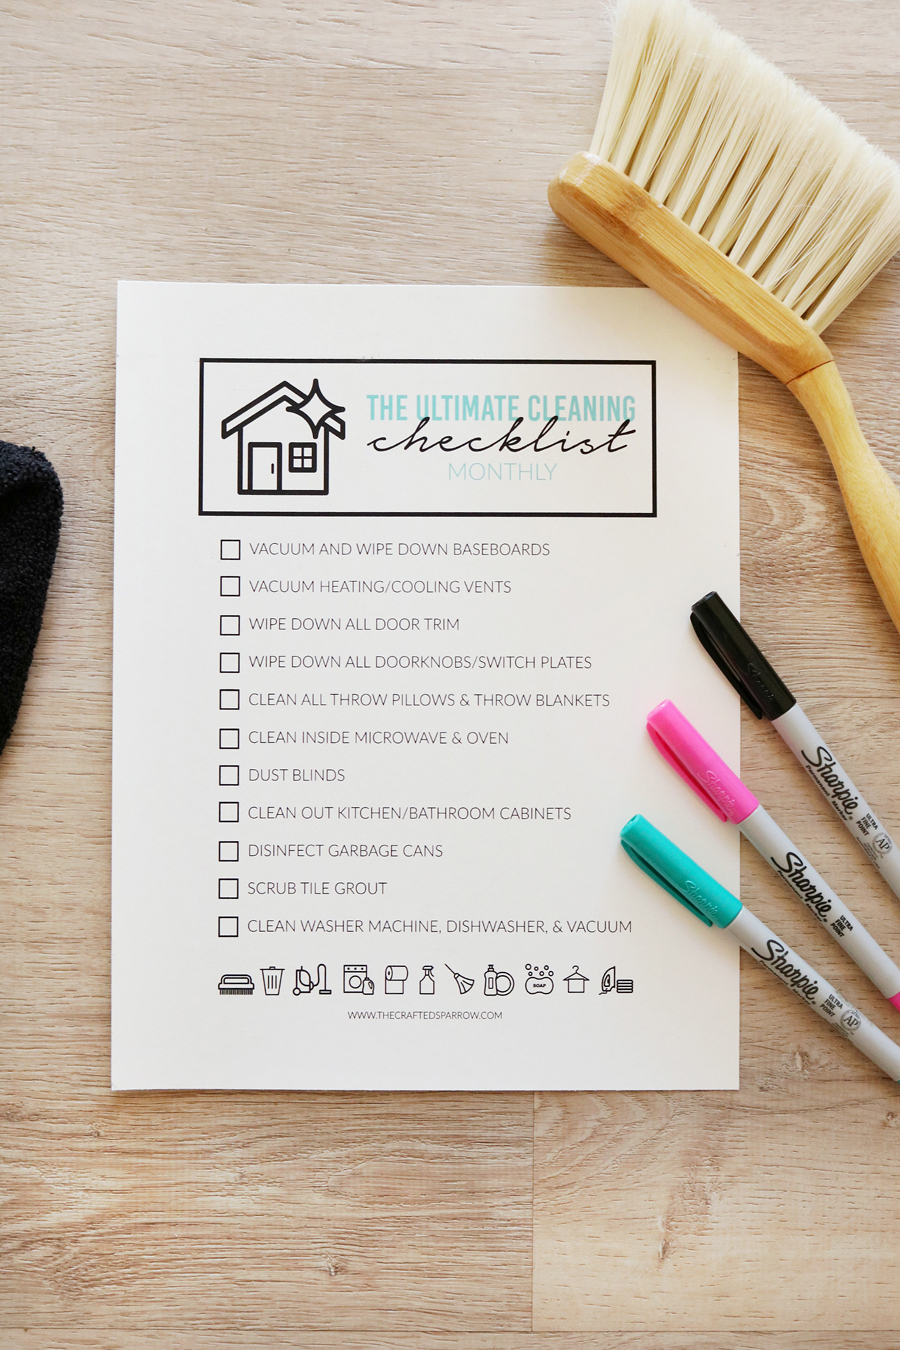 The Ultimate Cleaning Checklist - Montly Printable Checklists